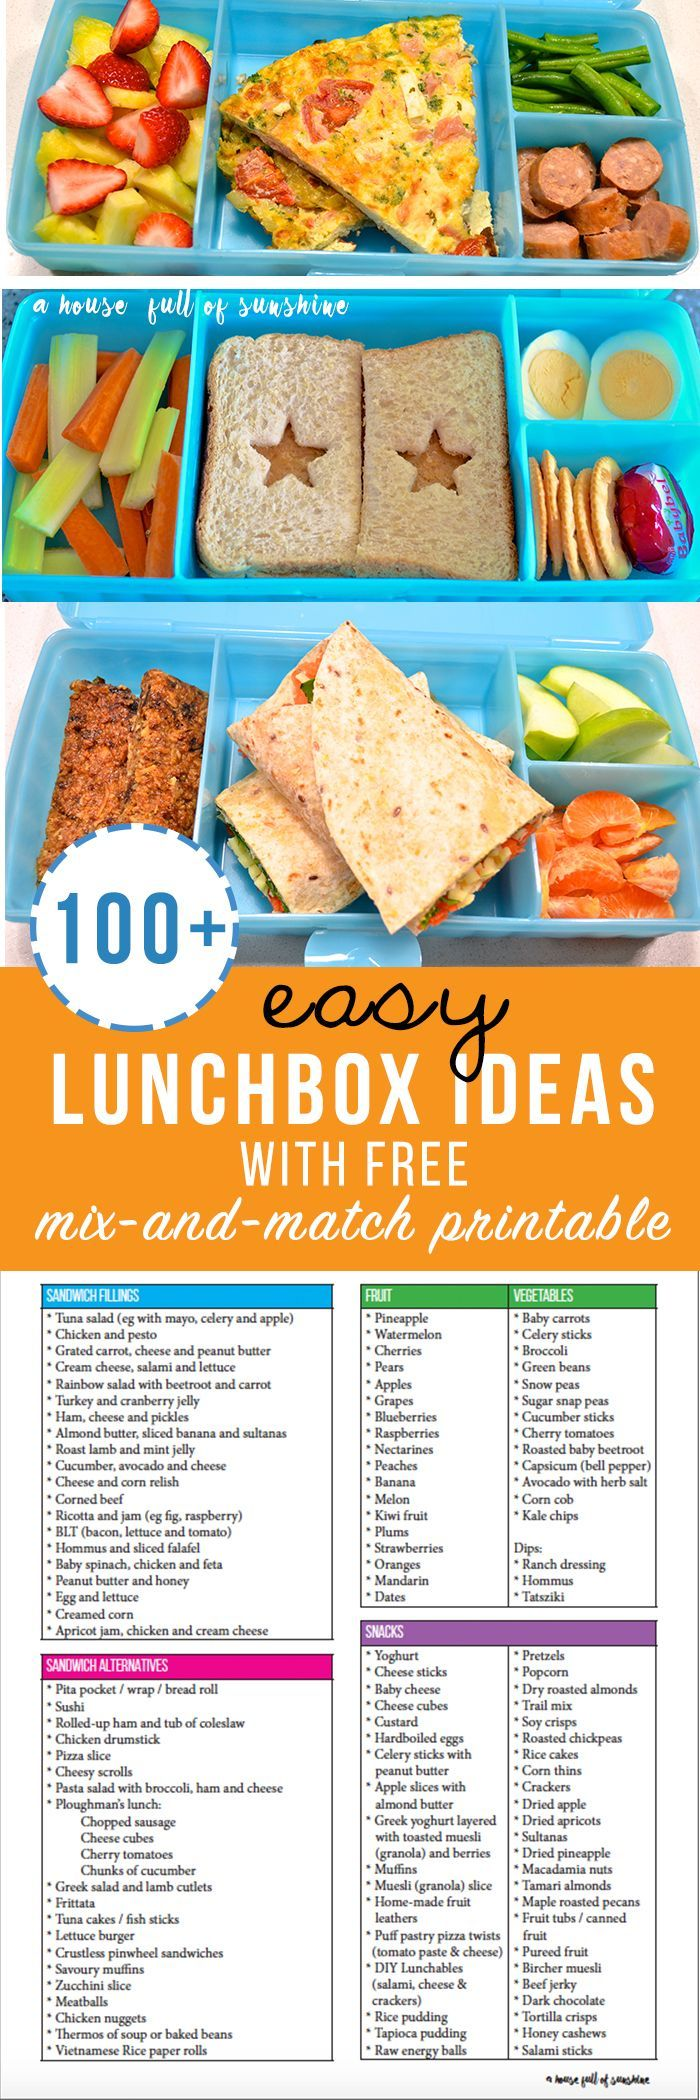 100+ Easy Lunchbox Ideas (with free mix-and-match printable!)